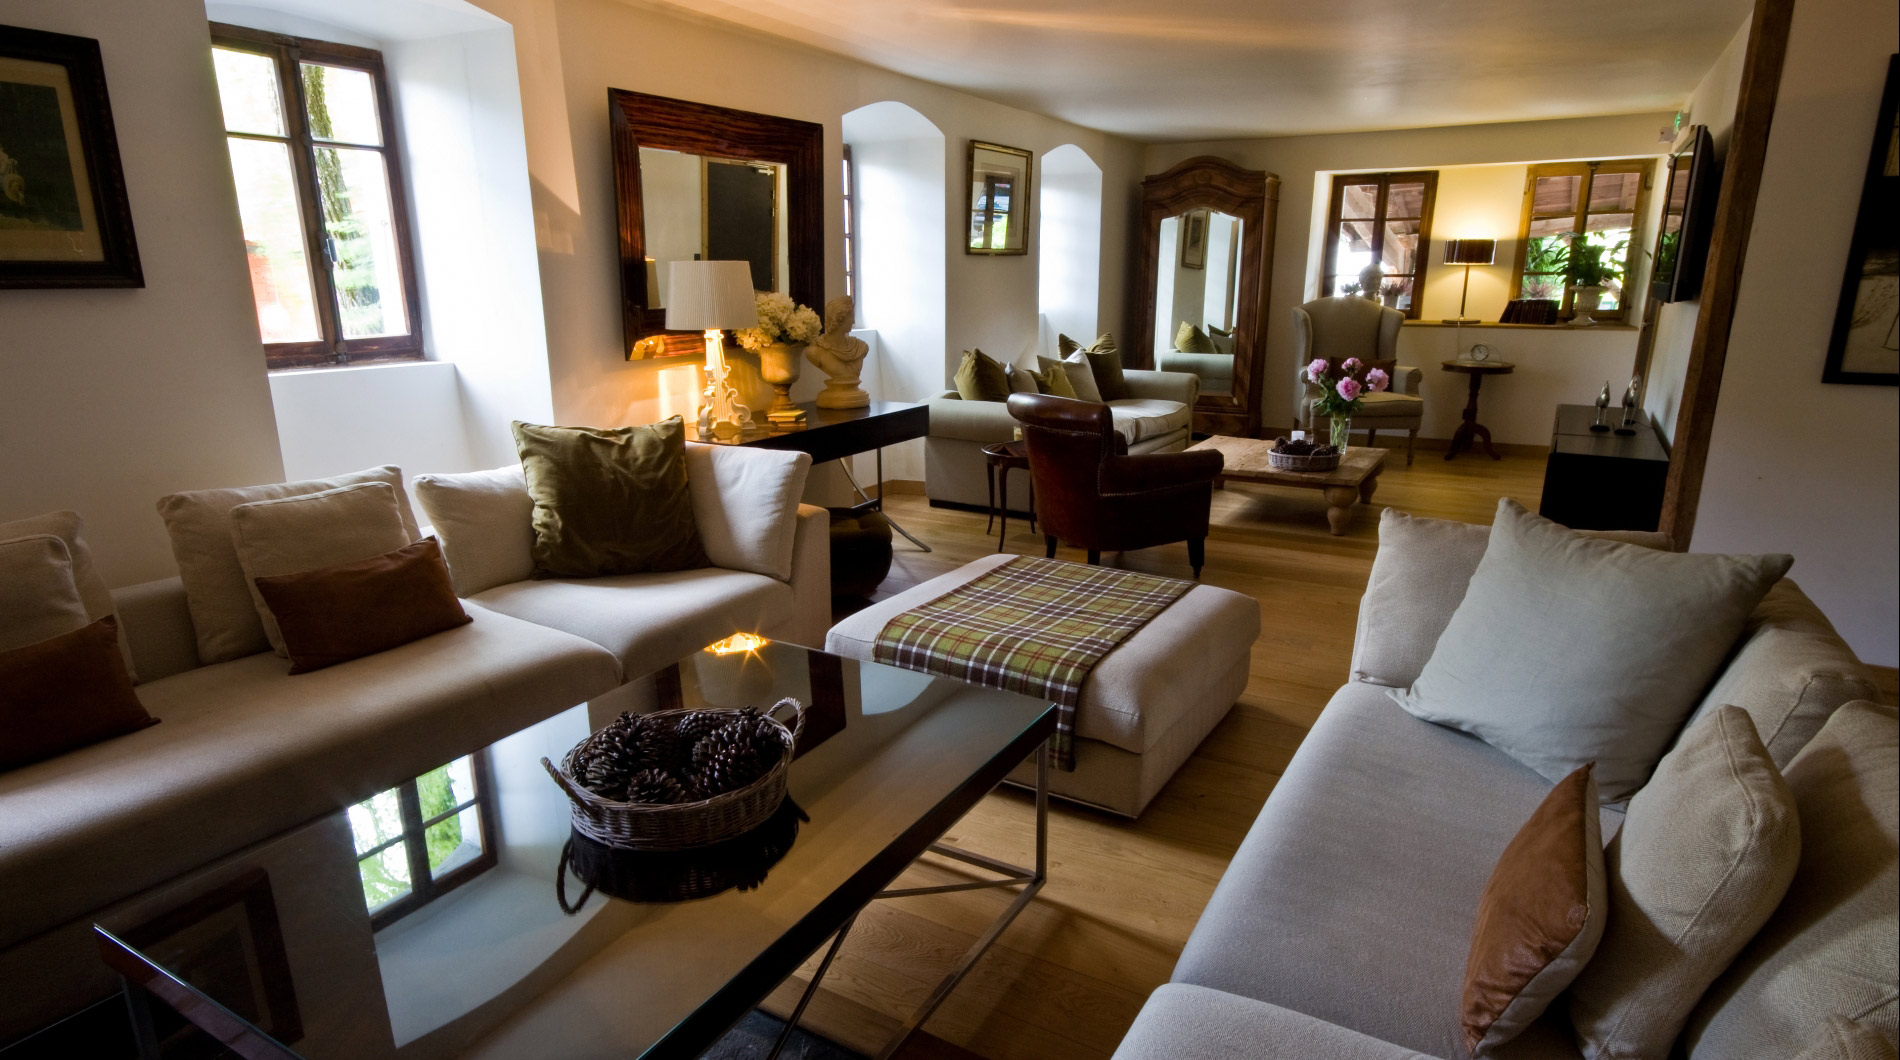 The living area is hugely spacious and comfortable for guests